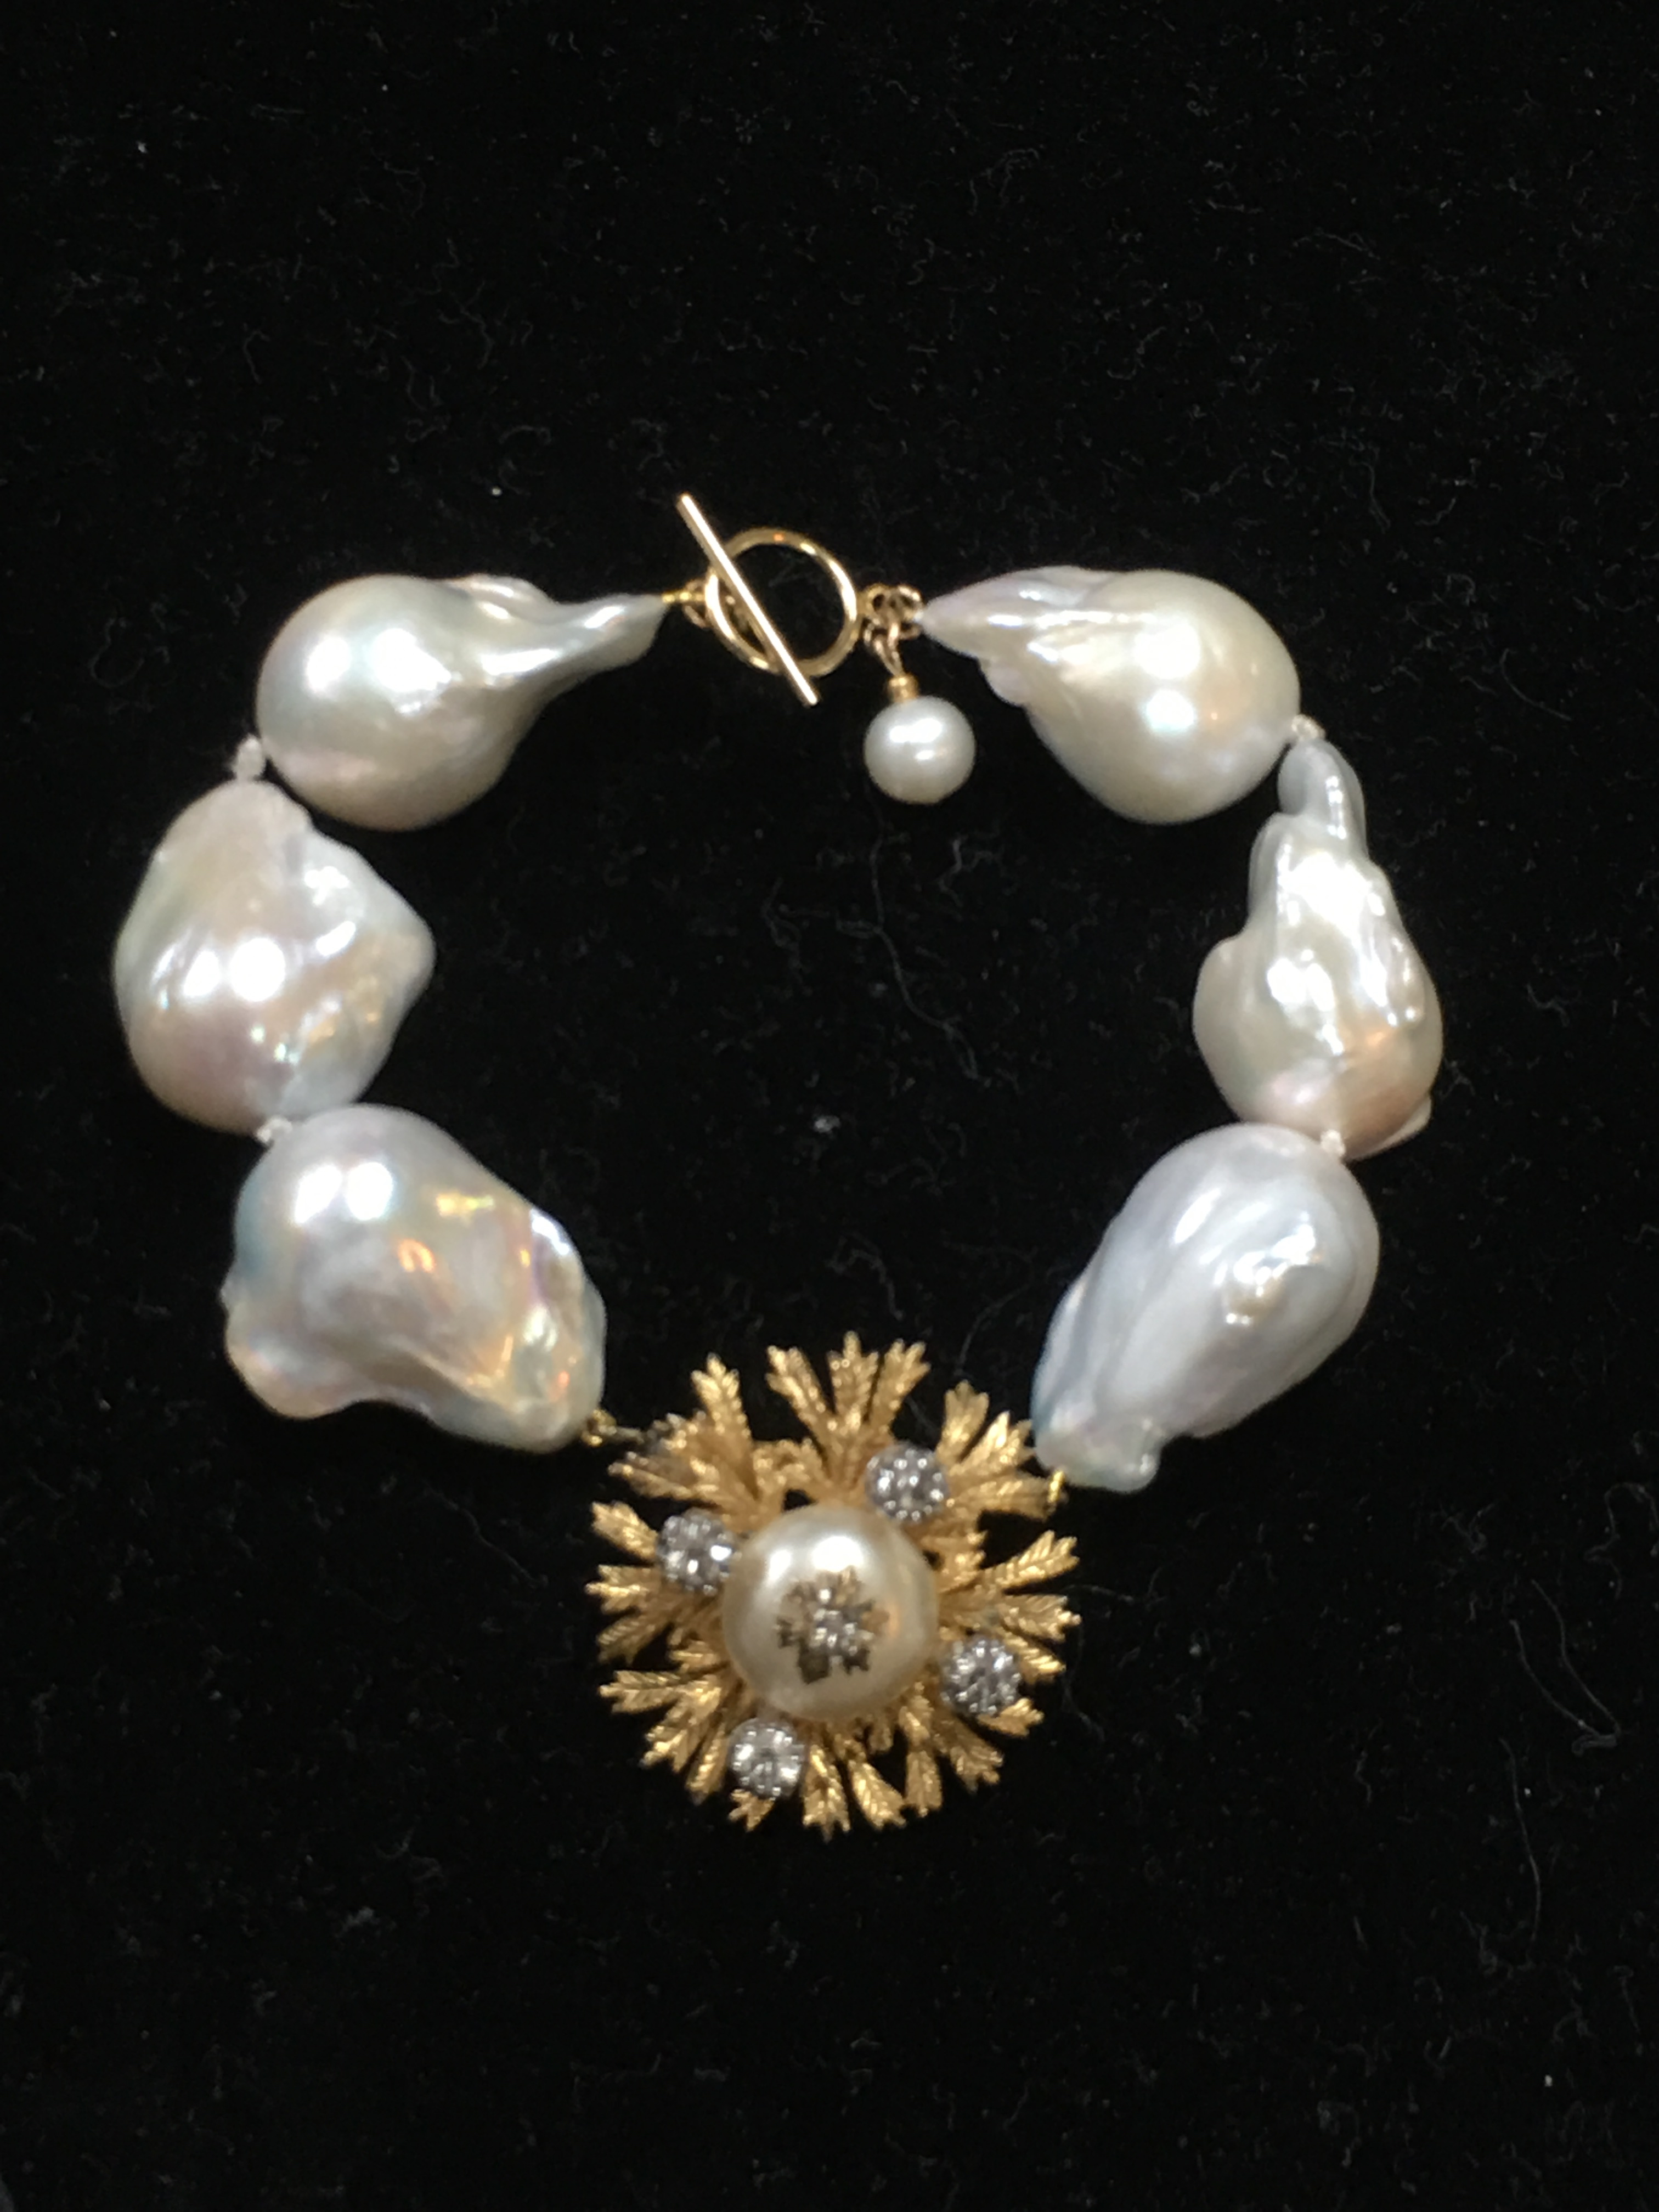 Freshwater Fireball Pearl Bracelet w/Vintage charm finished w/14KG filled clasp.